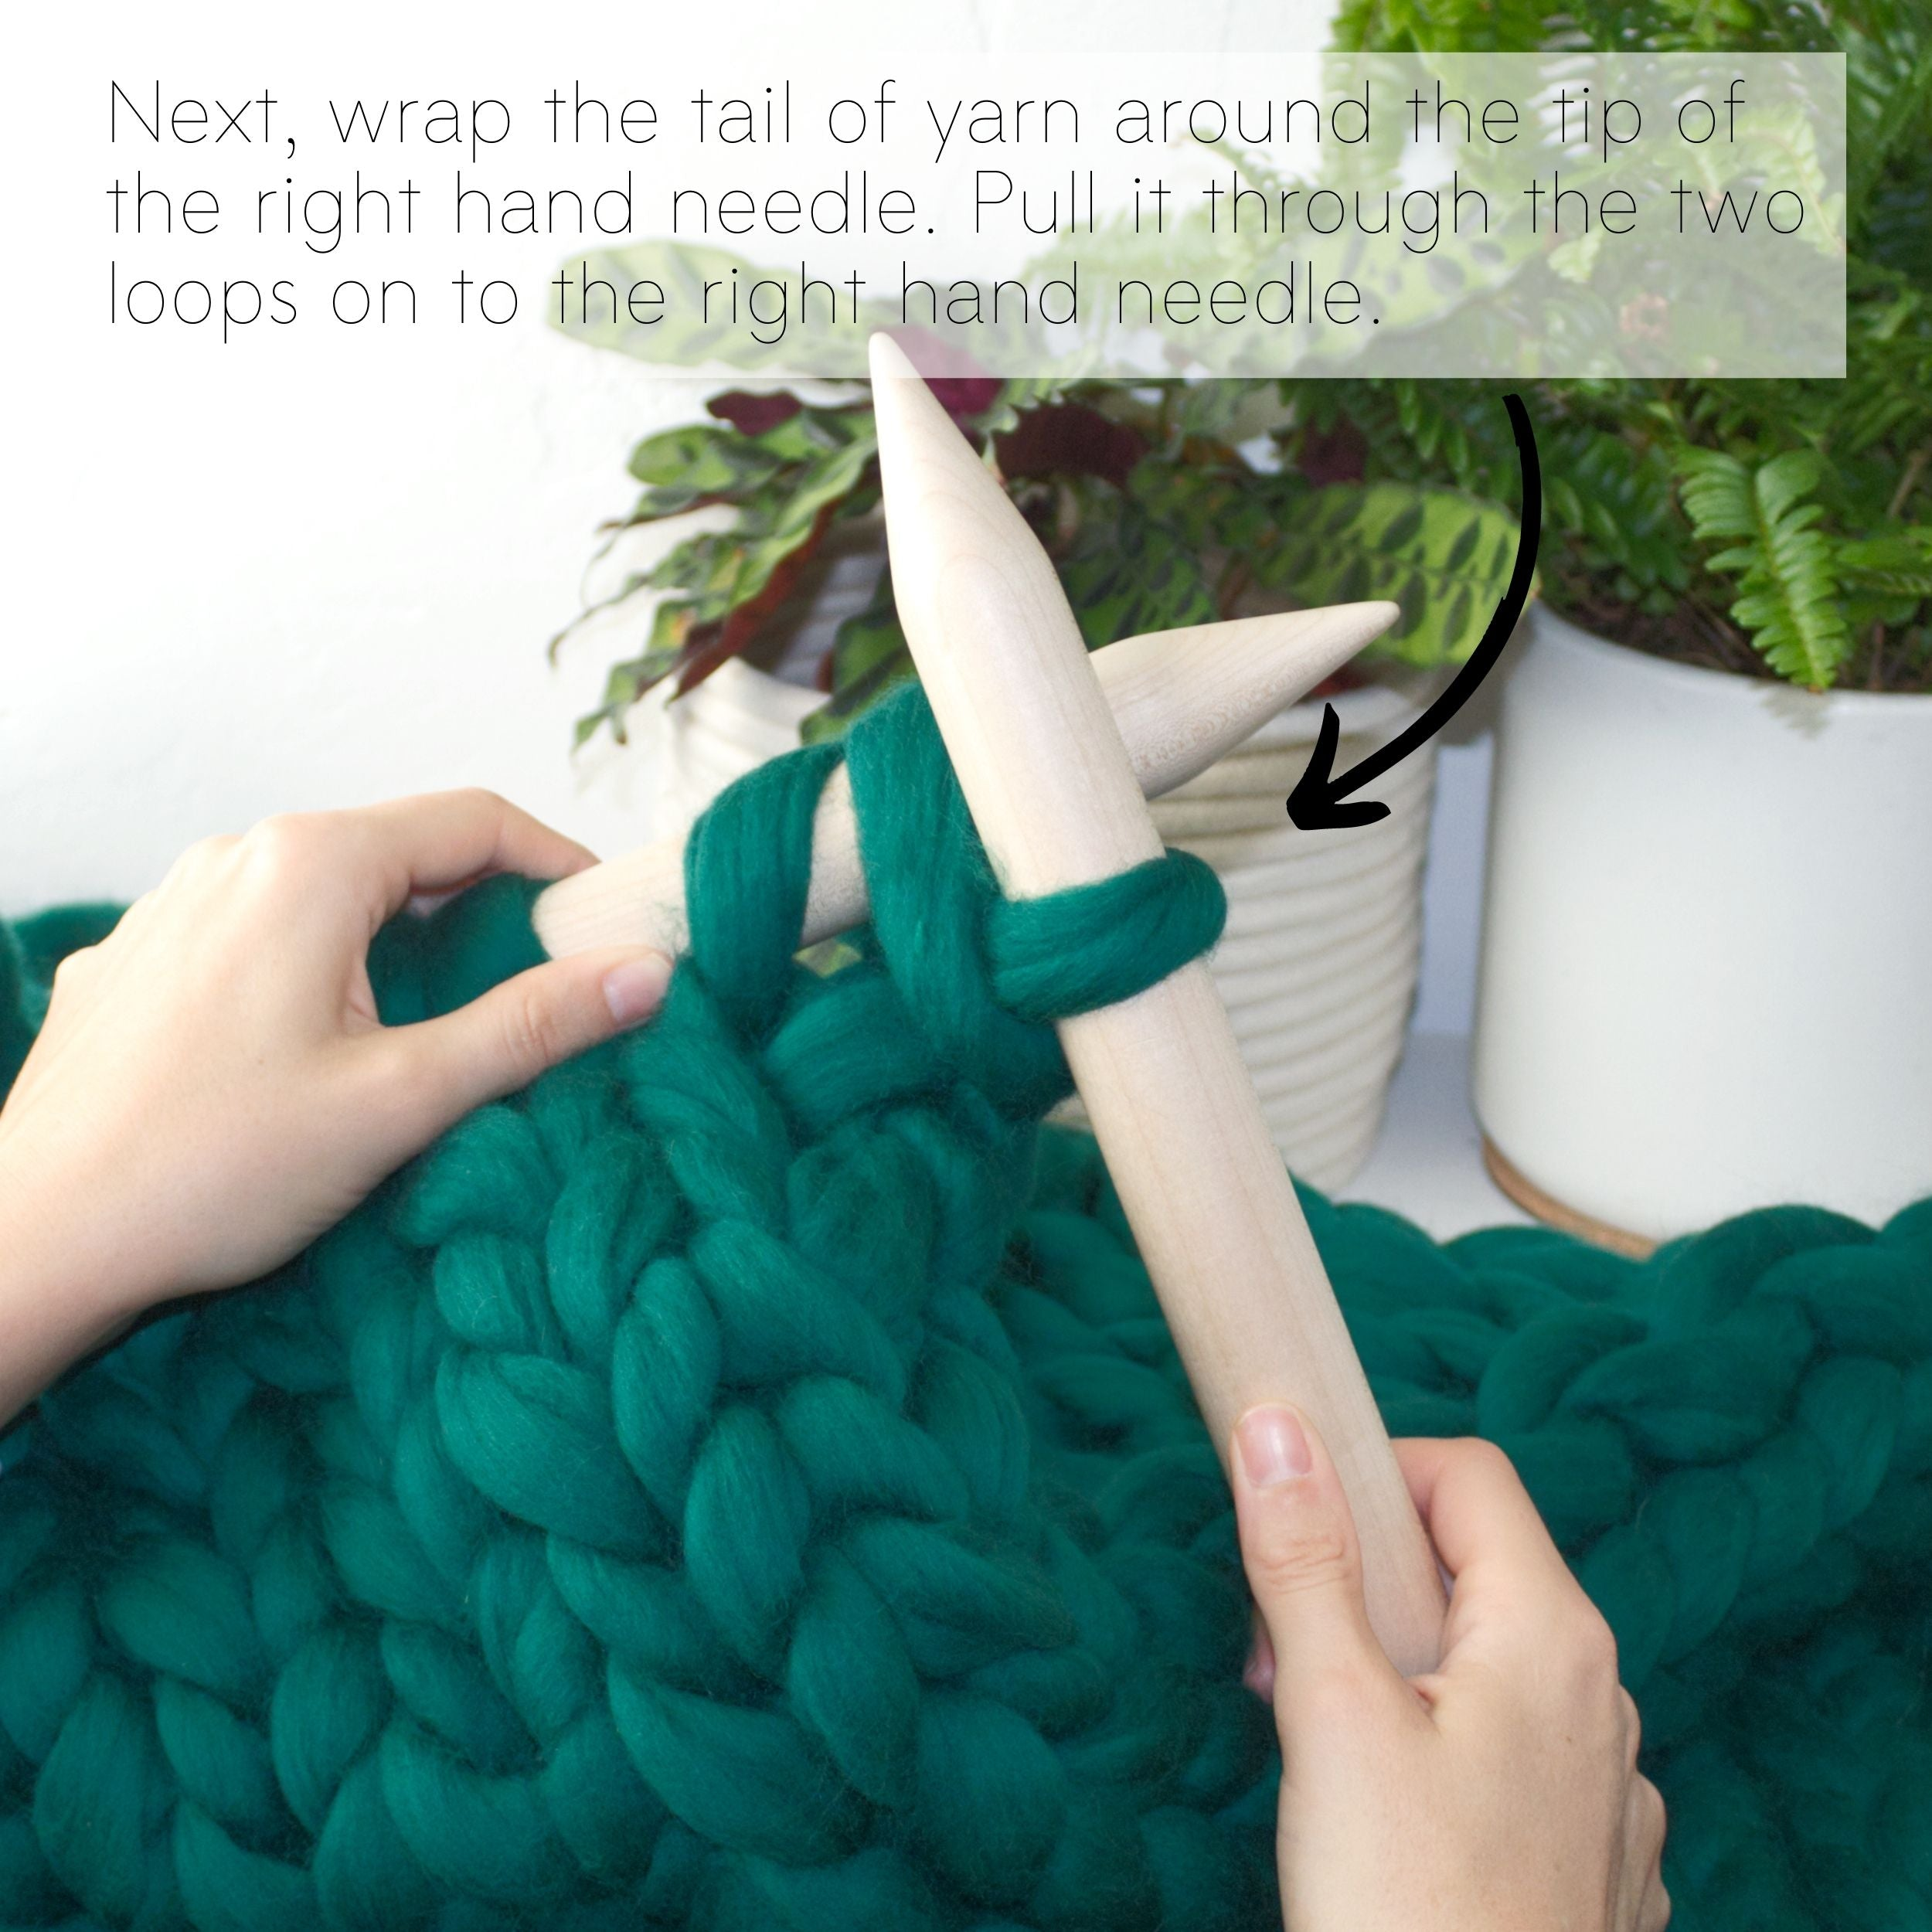 How to make a DIY chunky knit blanket, step 6.4